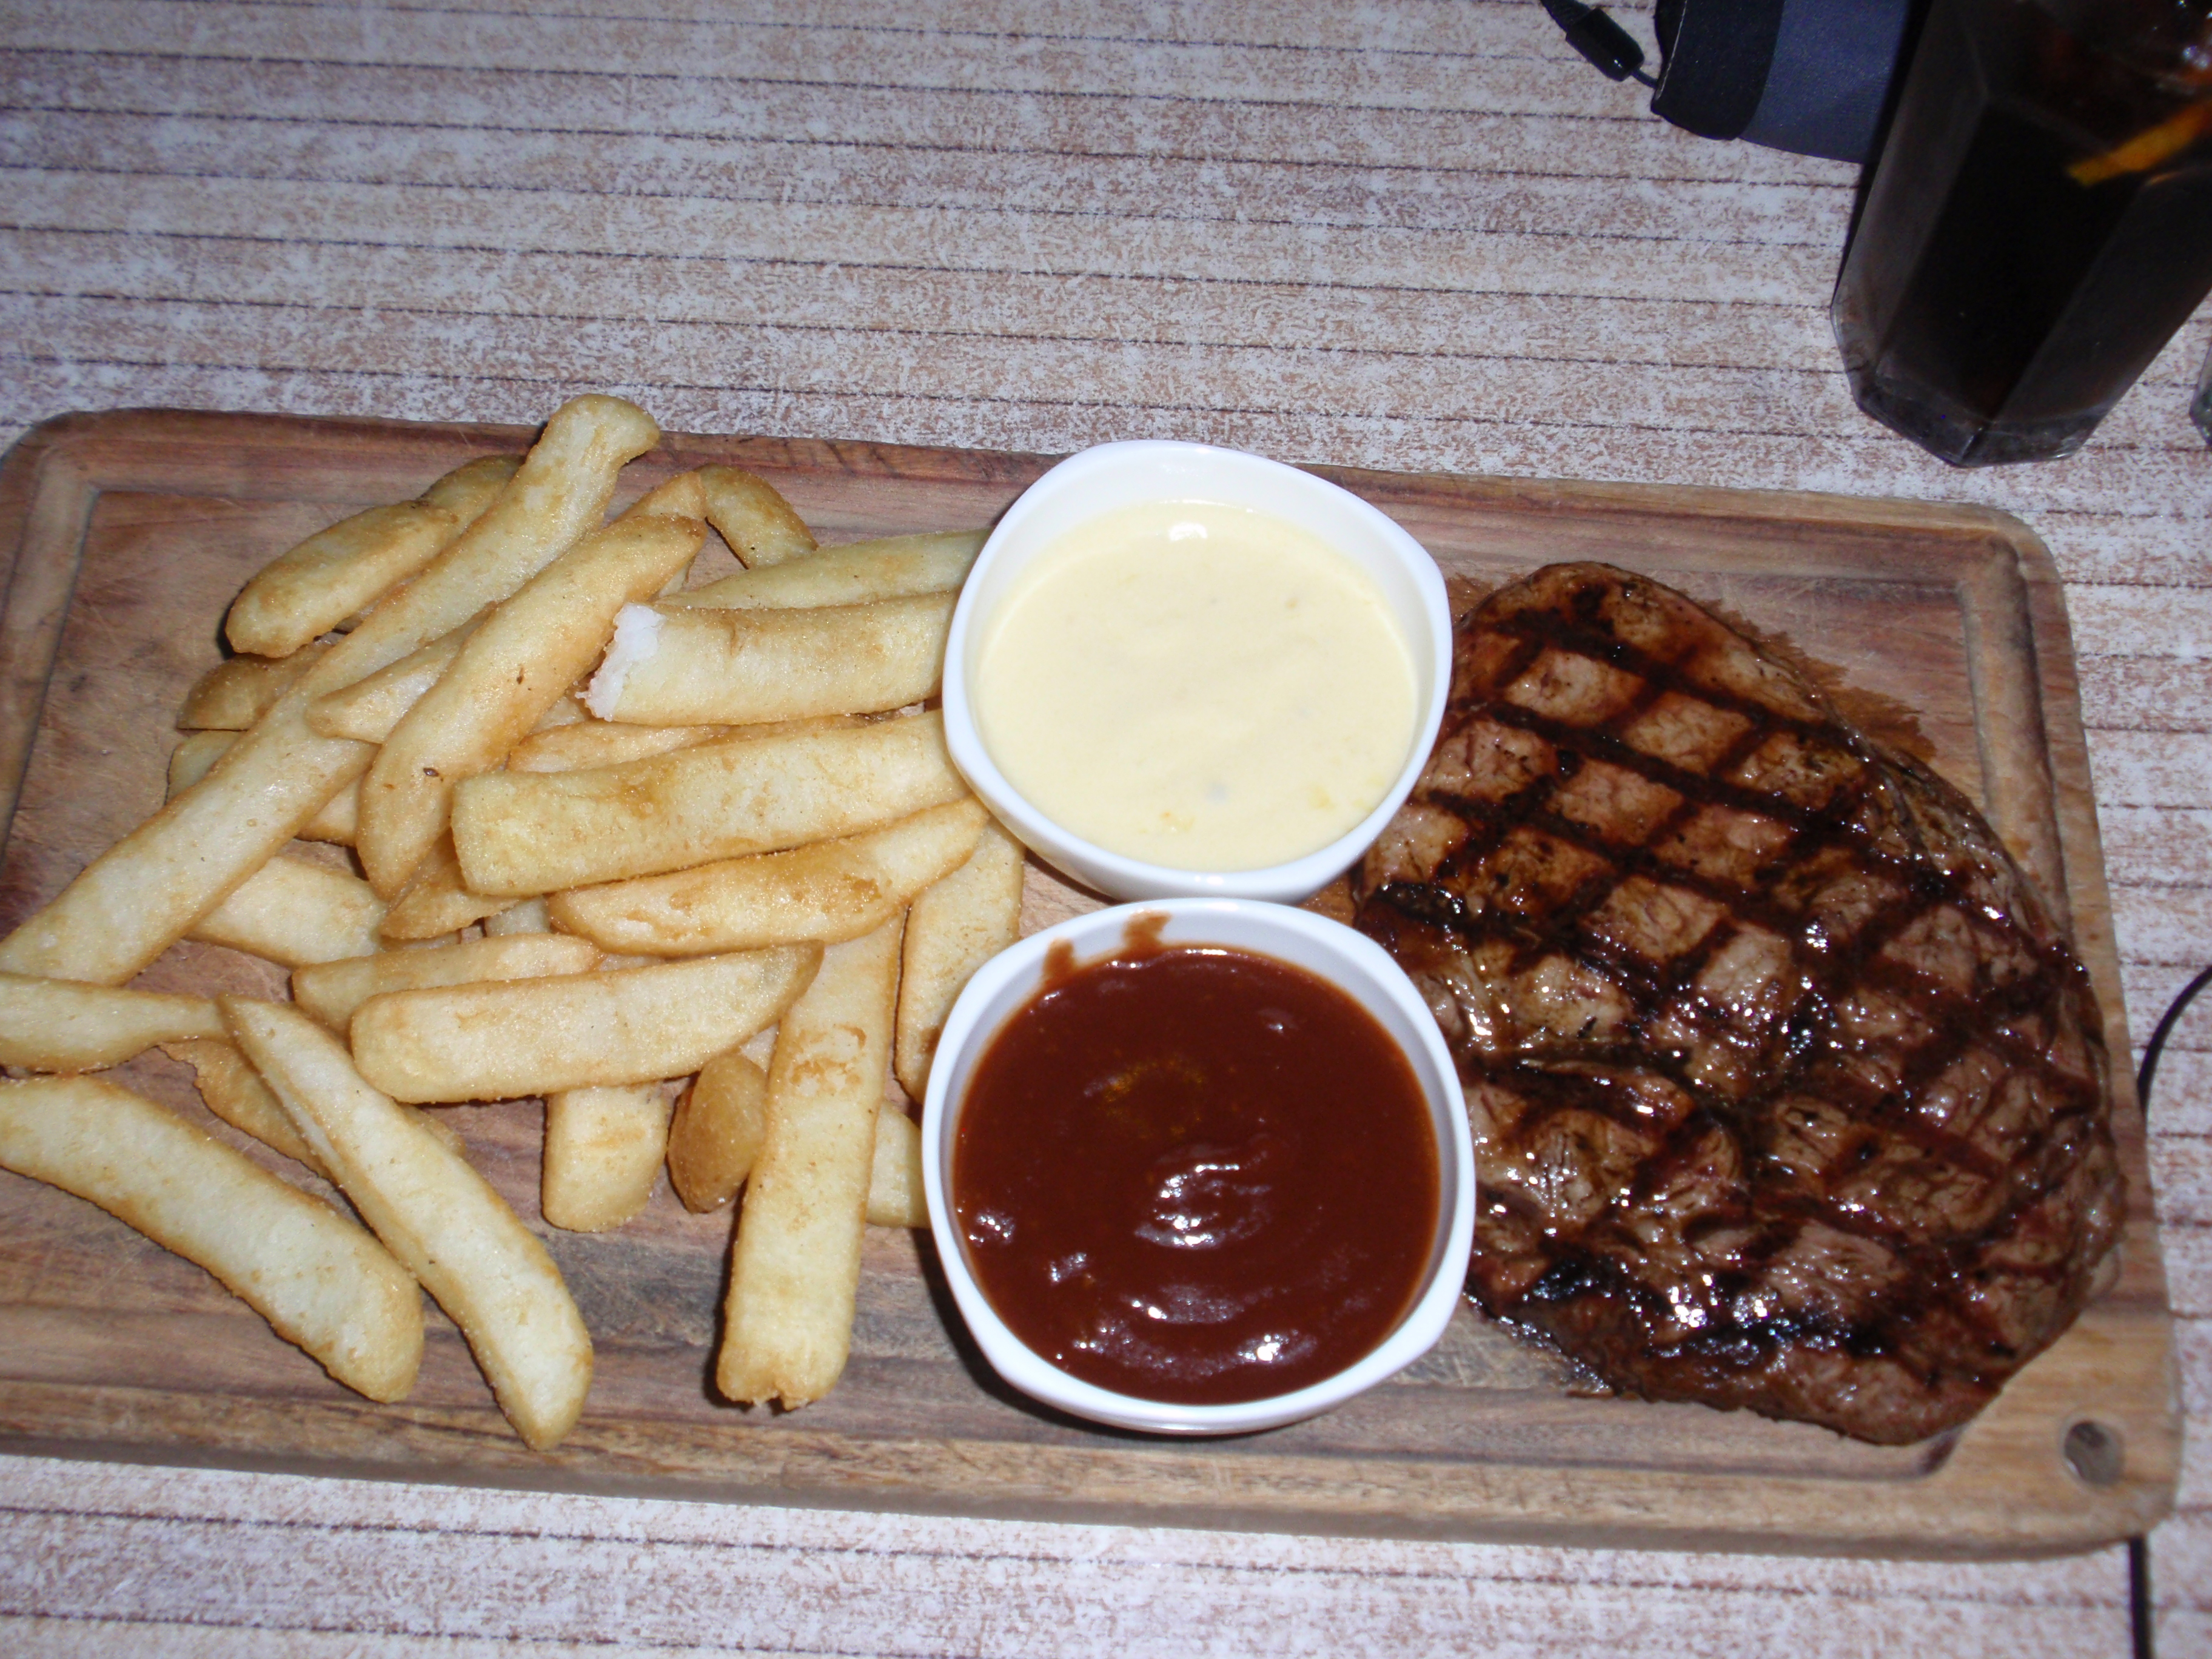 Steak and Chips, anyone?